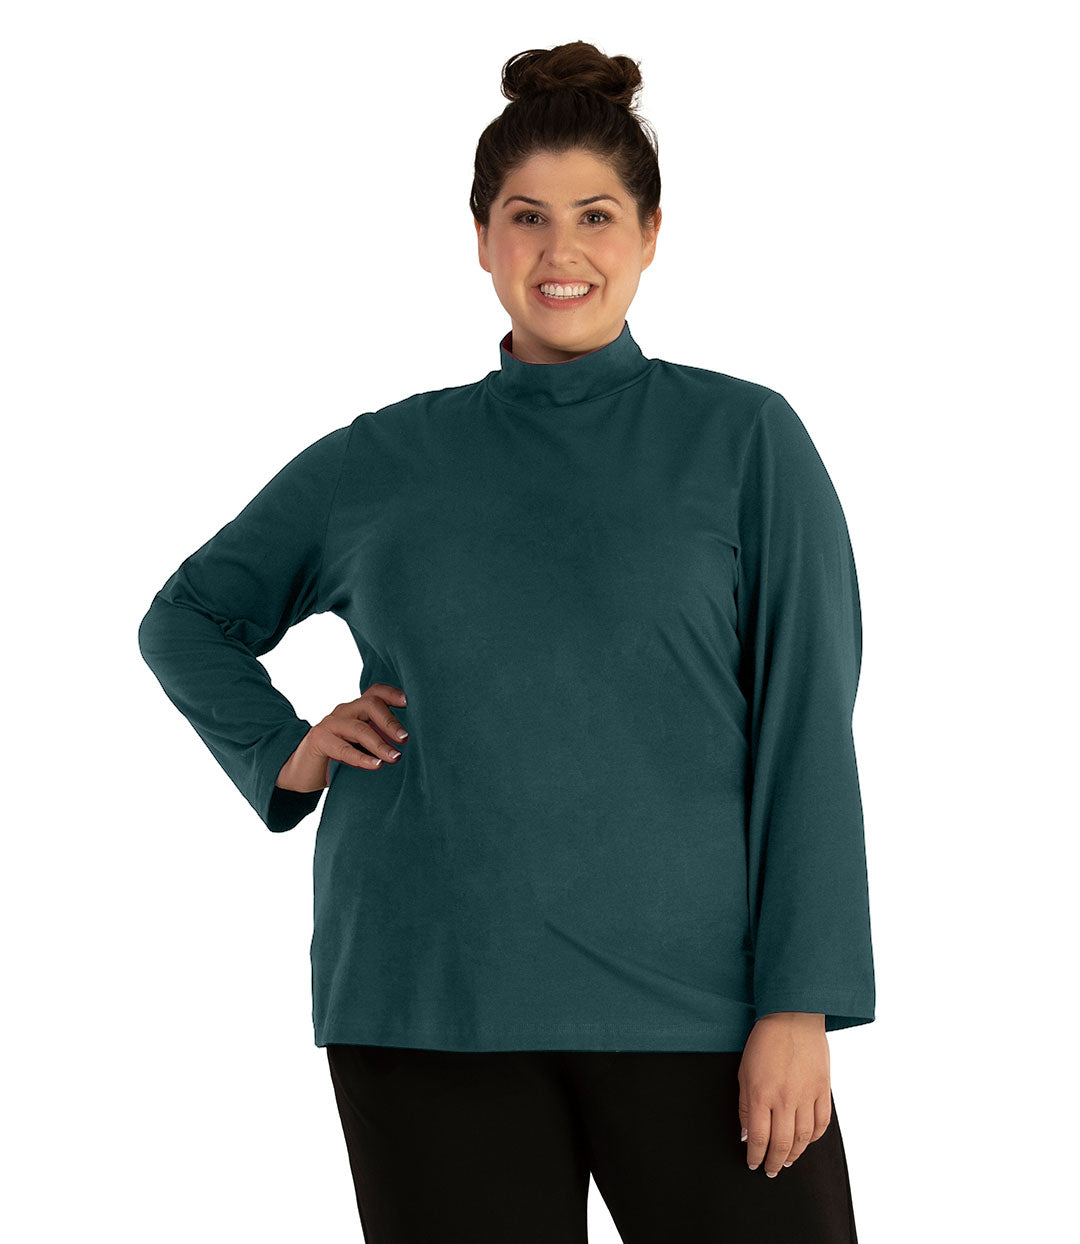 Stretch Naturals Lite Mock Neck Top-Tops Long Sleeve-Hop Wo Trading Co Ltd-XL-Spruce-JunoActive